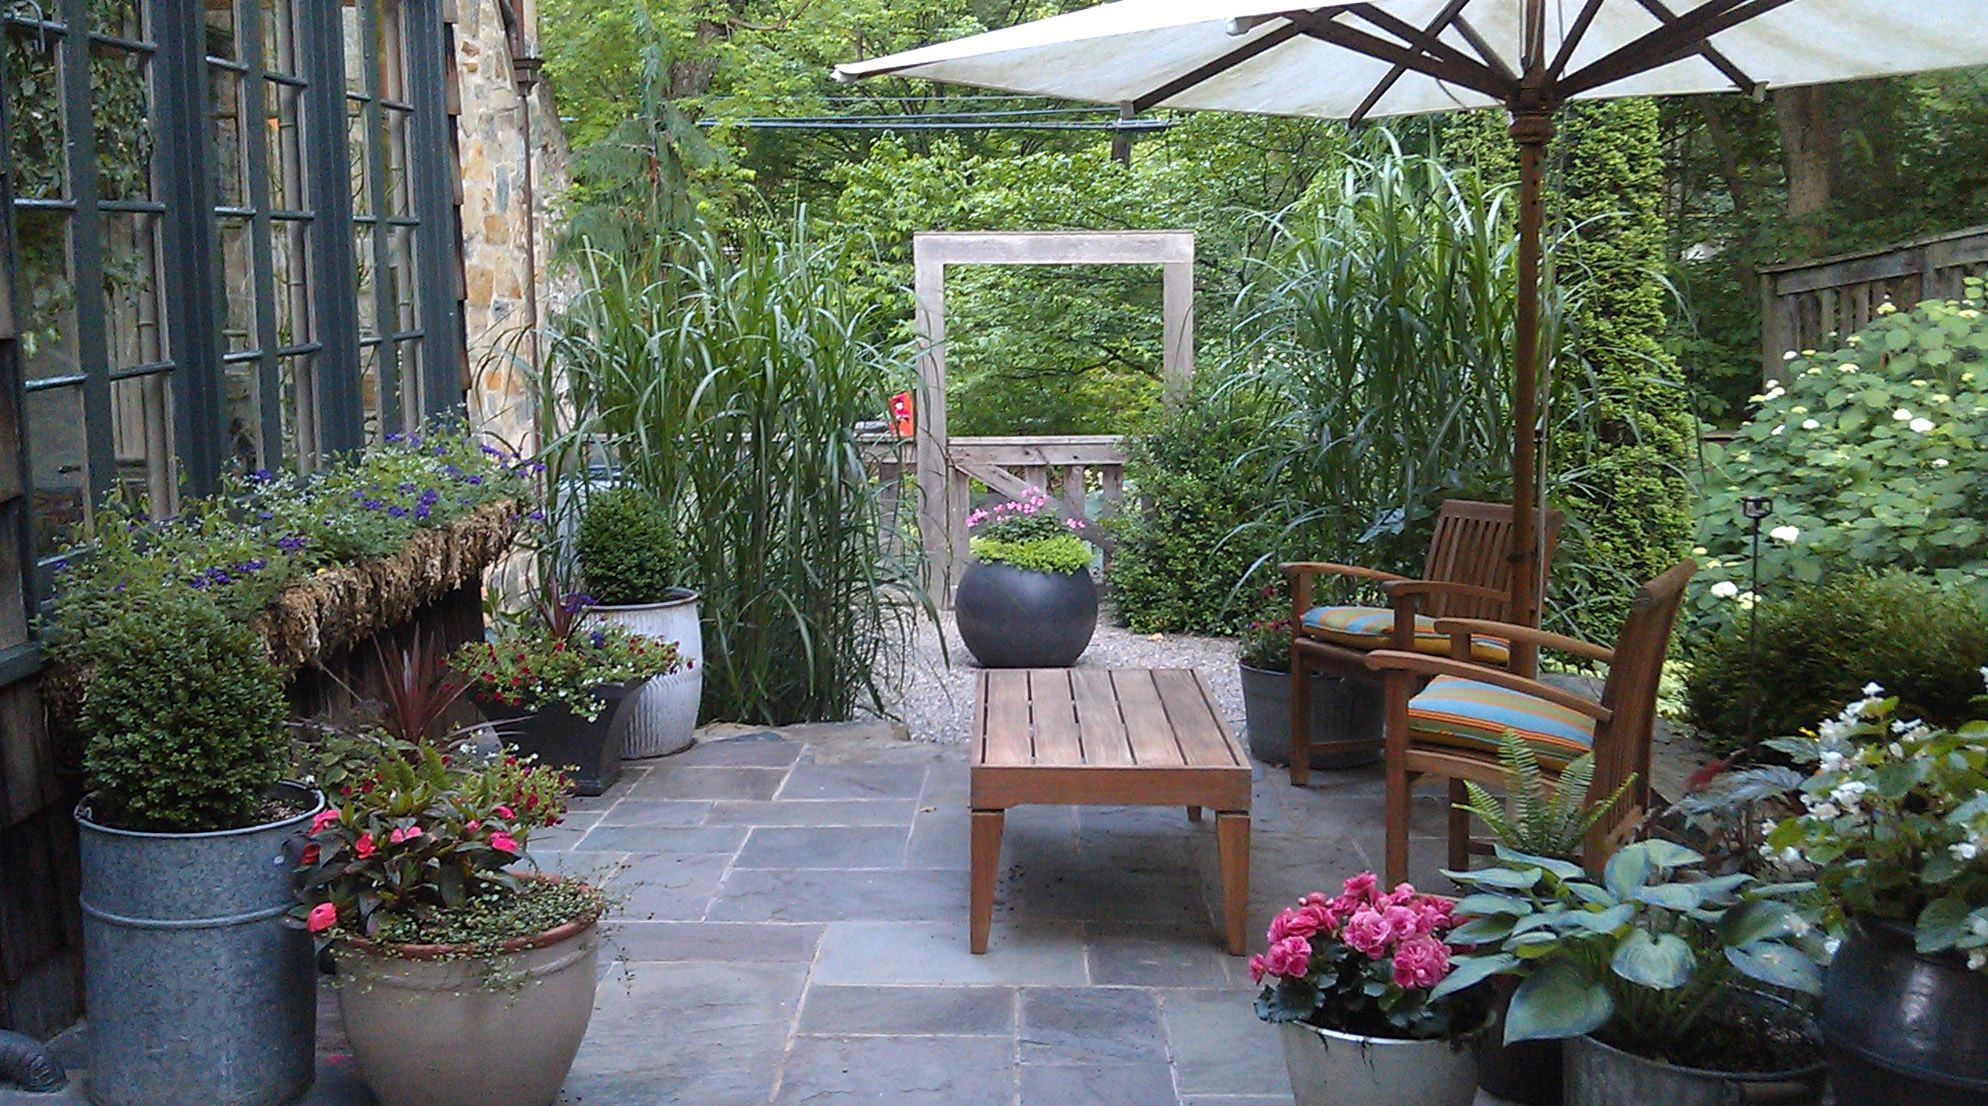 east coast garden finds its true cottage identity garden design